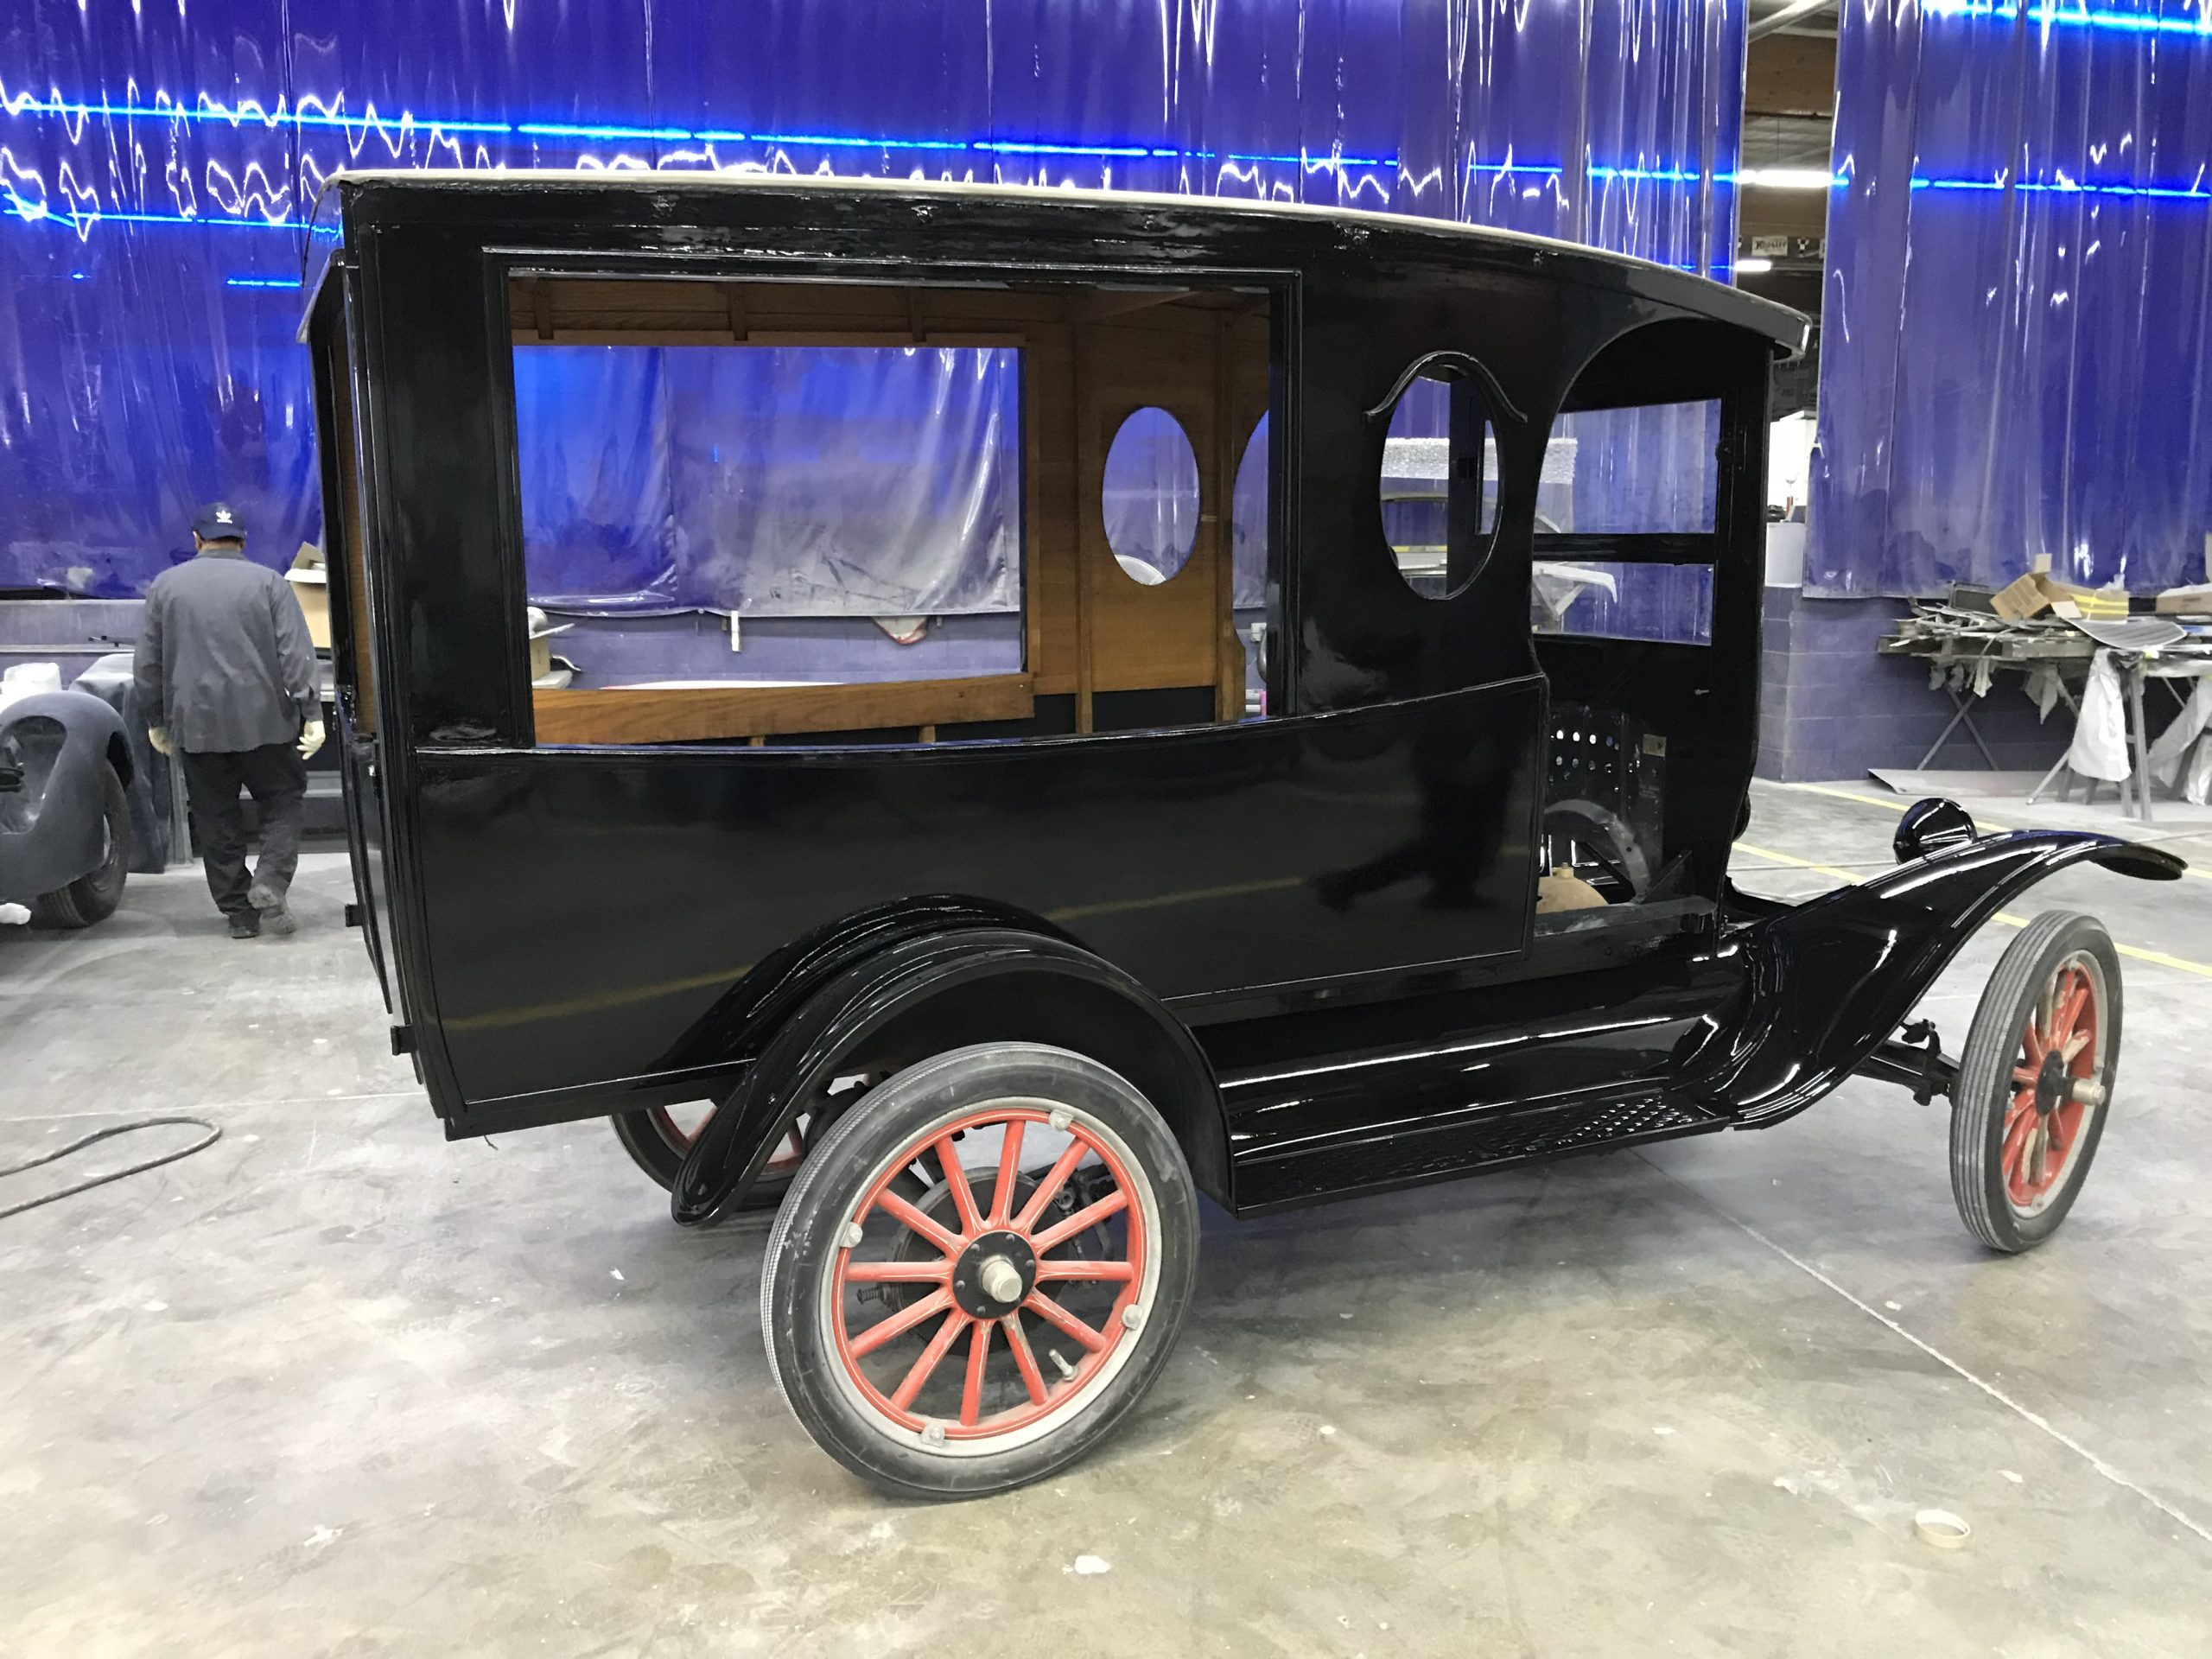 perry mason milktruck ford model t prop car base